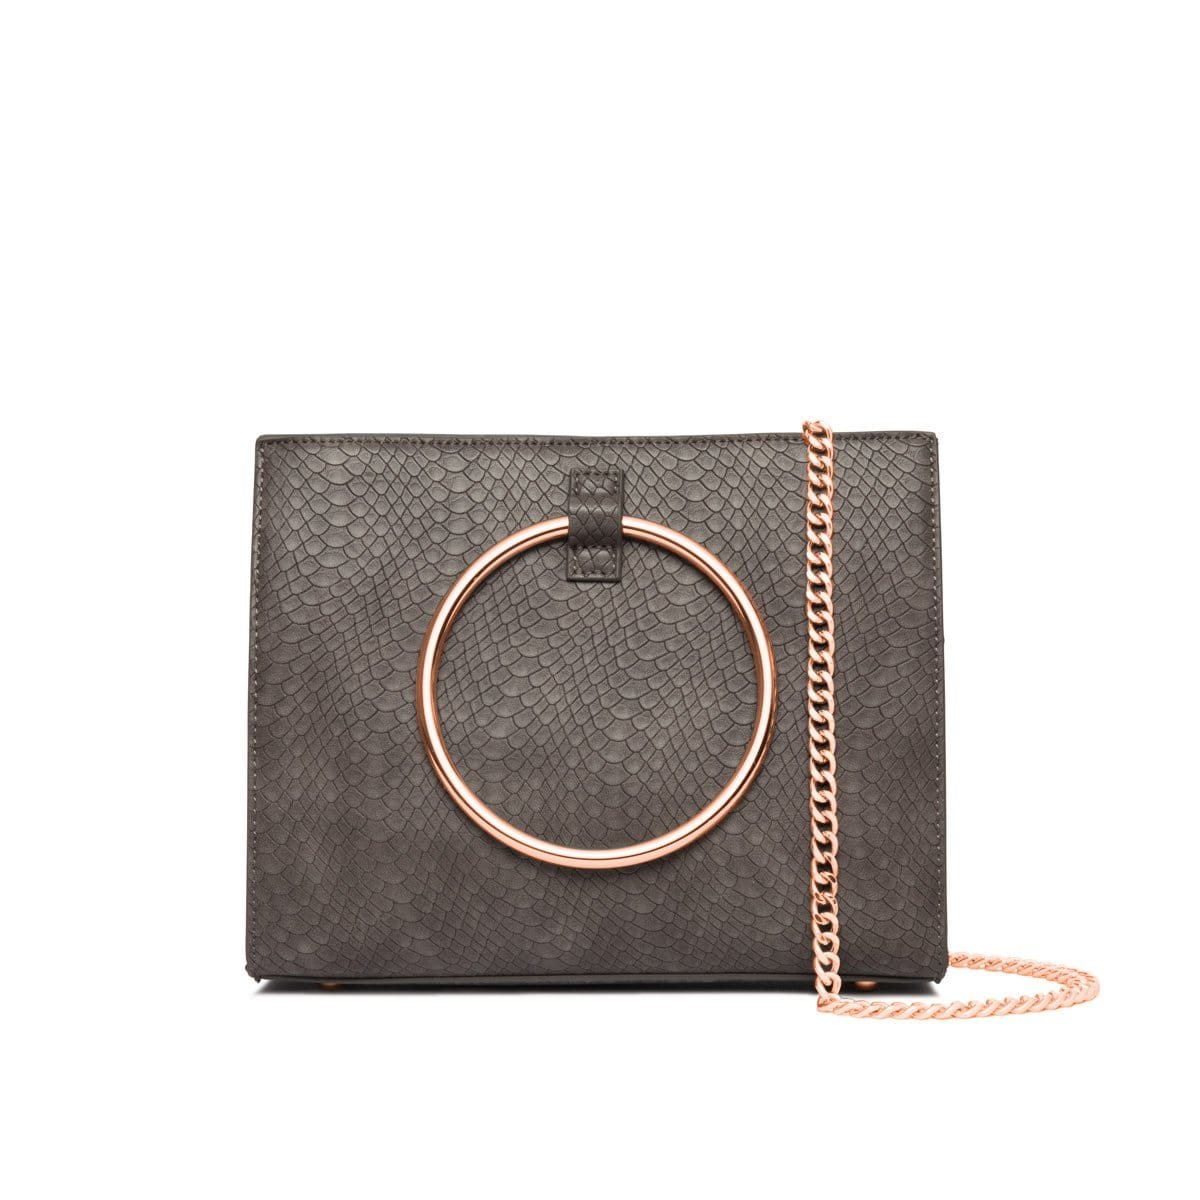 Moda Top Handle bag (Frost Grey/Rose Gold)